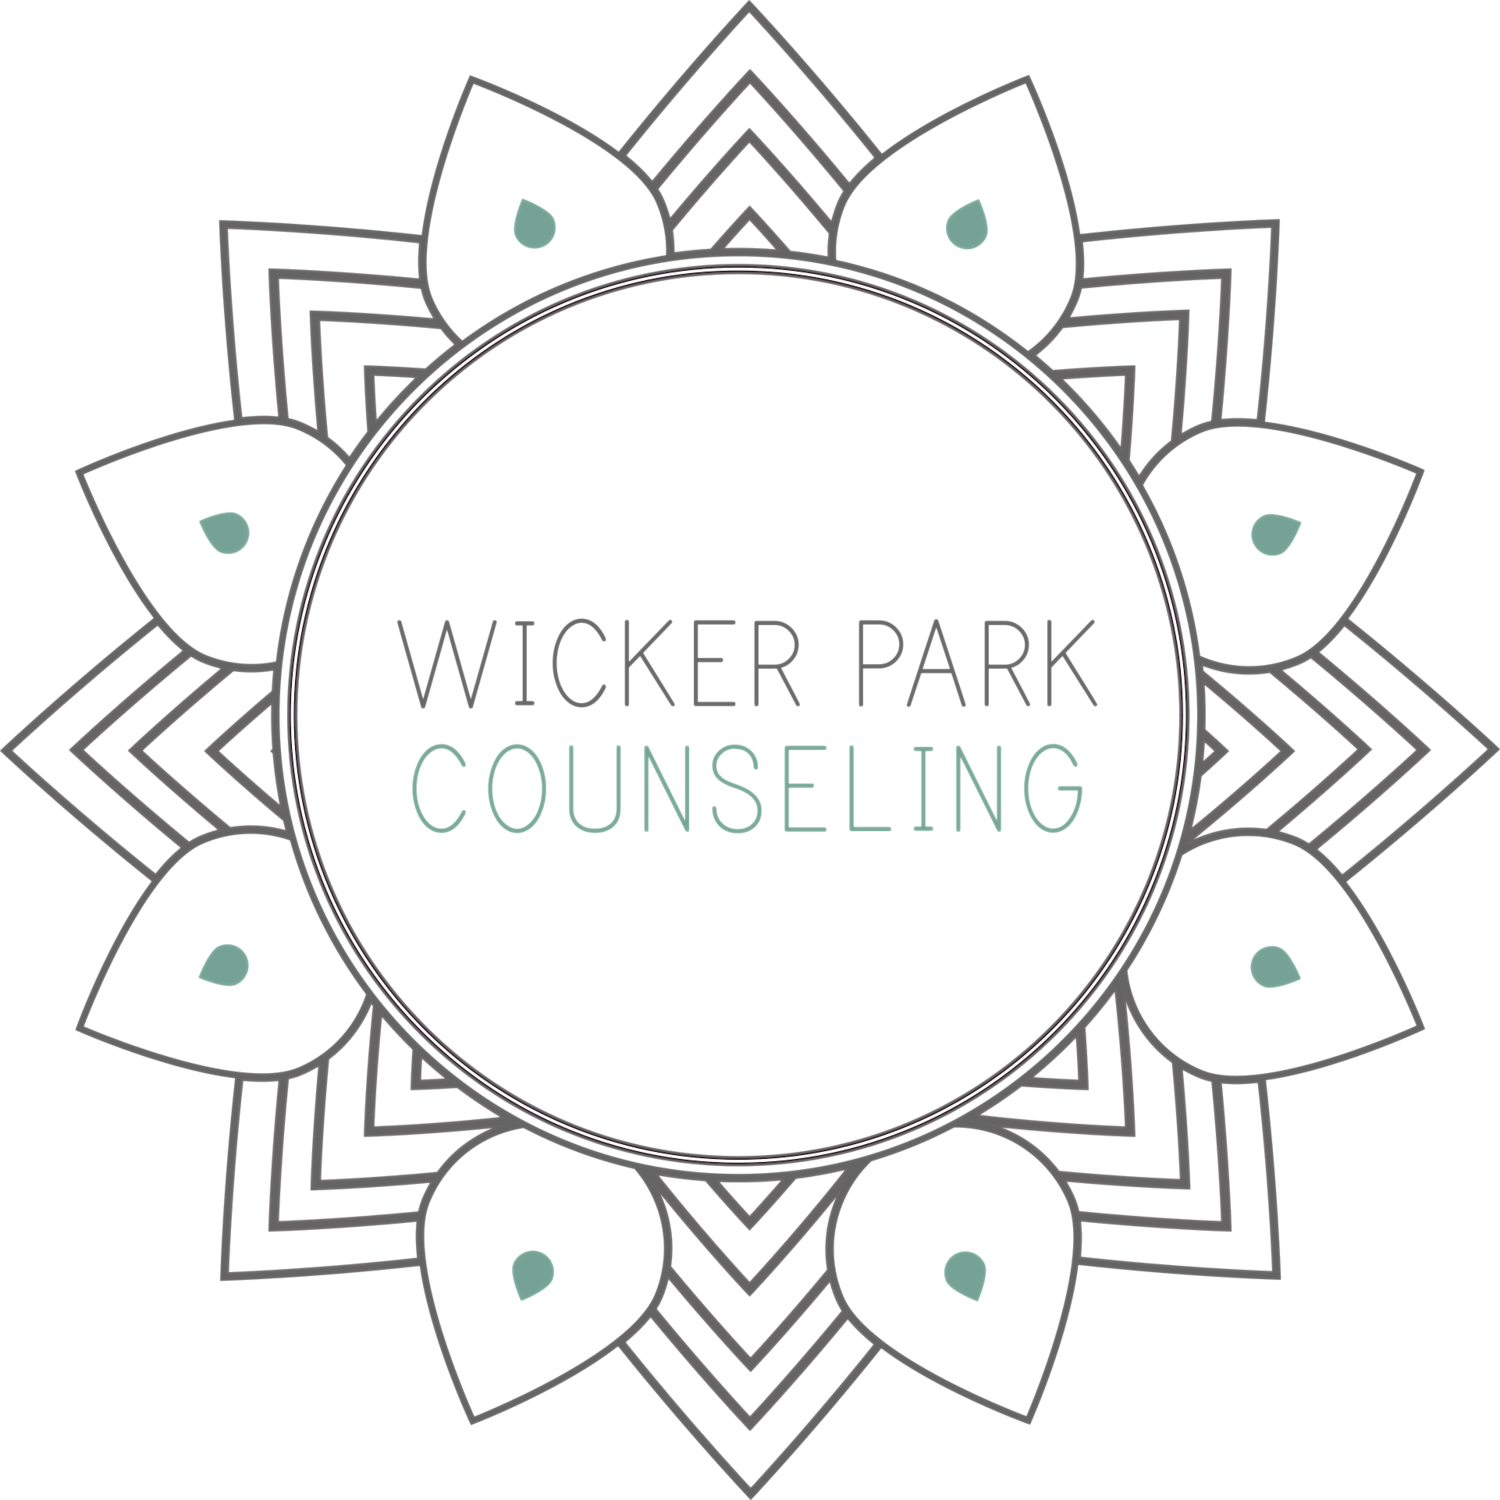 Wicker Park Counseling